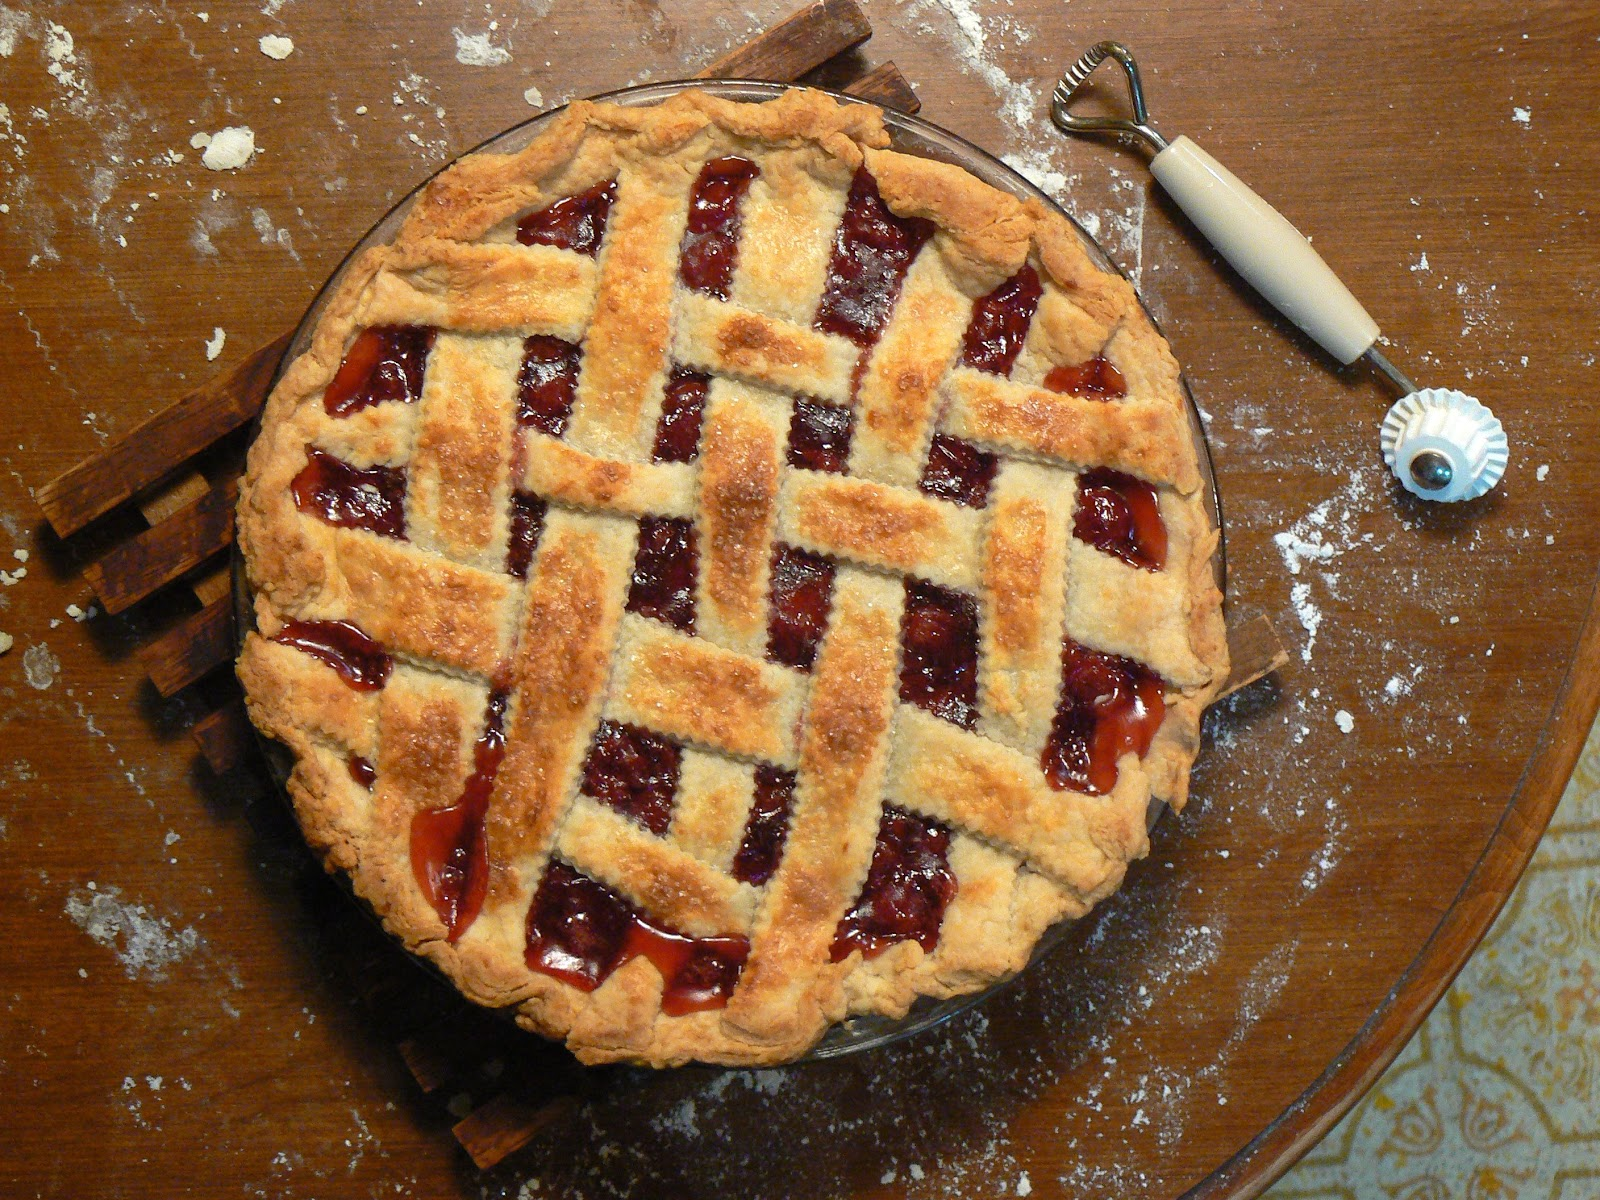 A homemade cherry pie with a